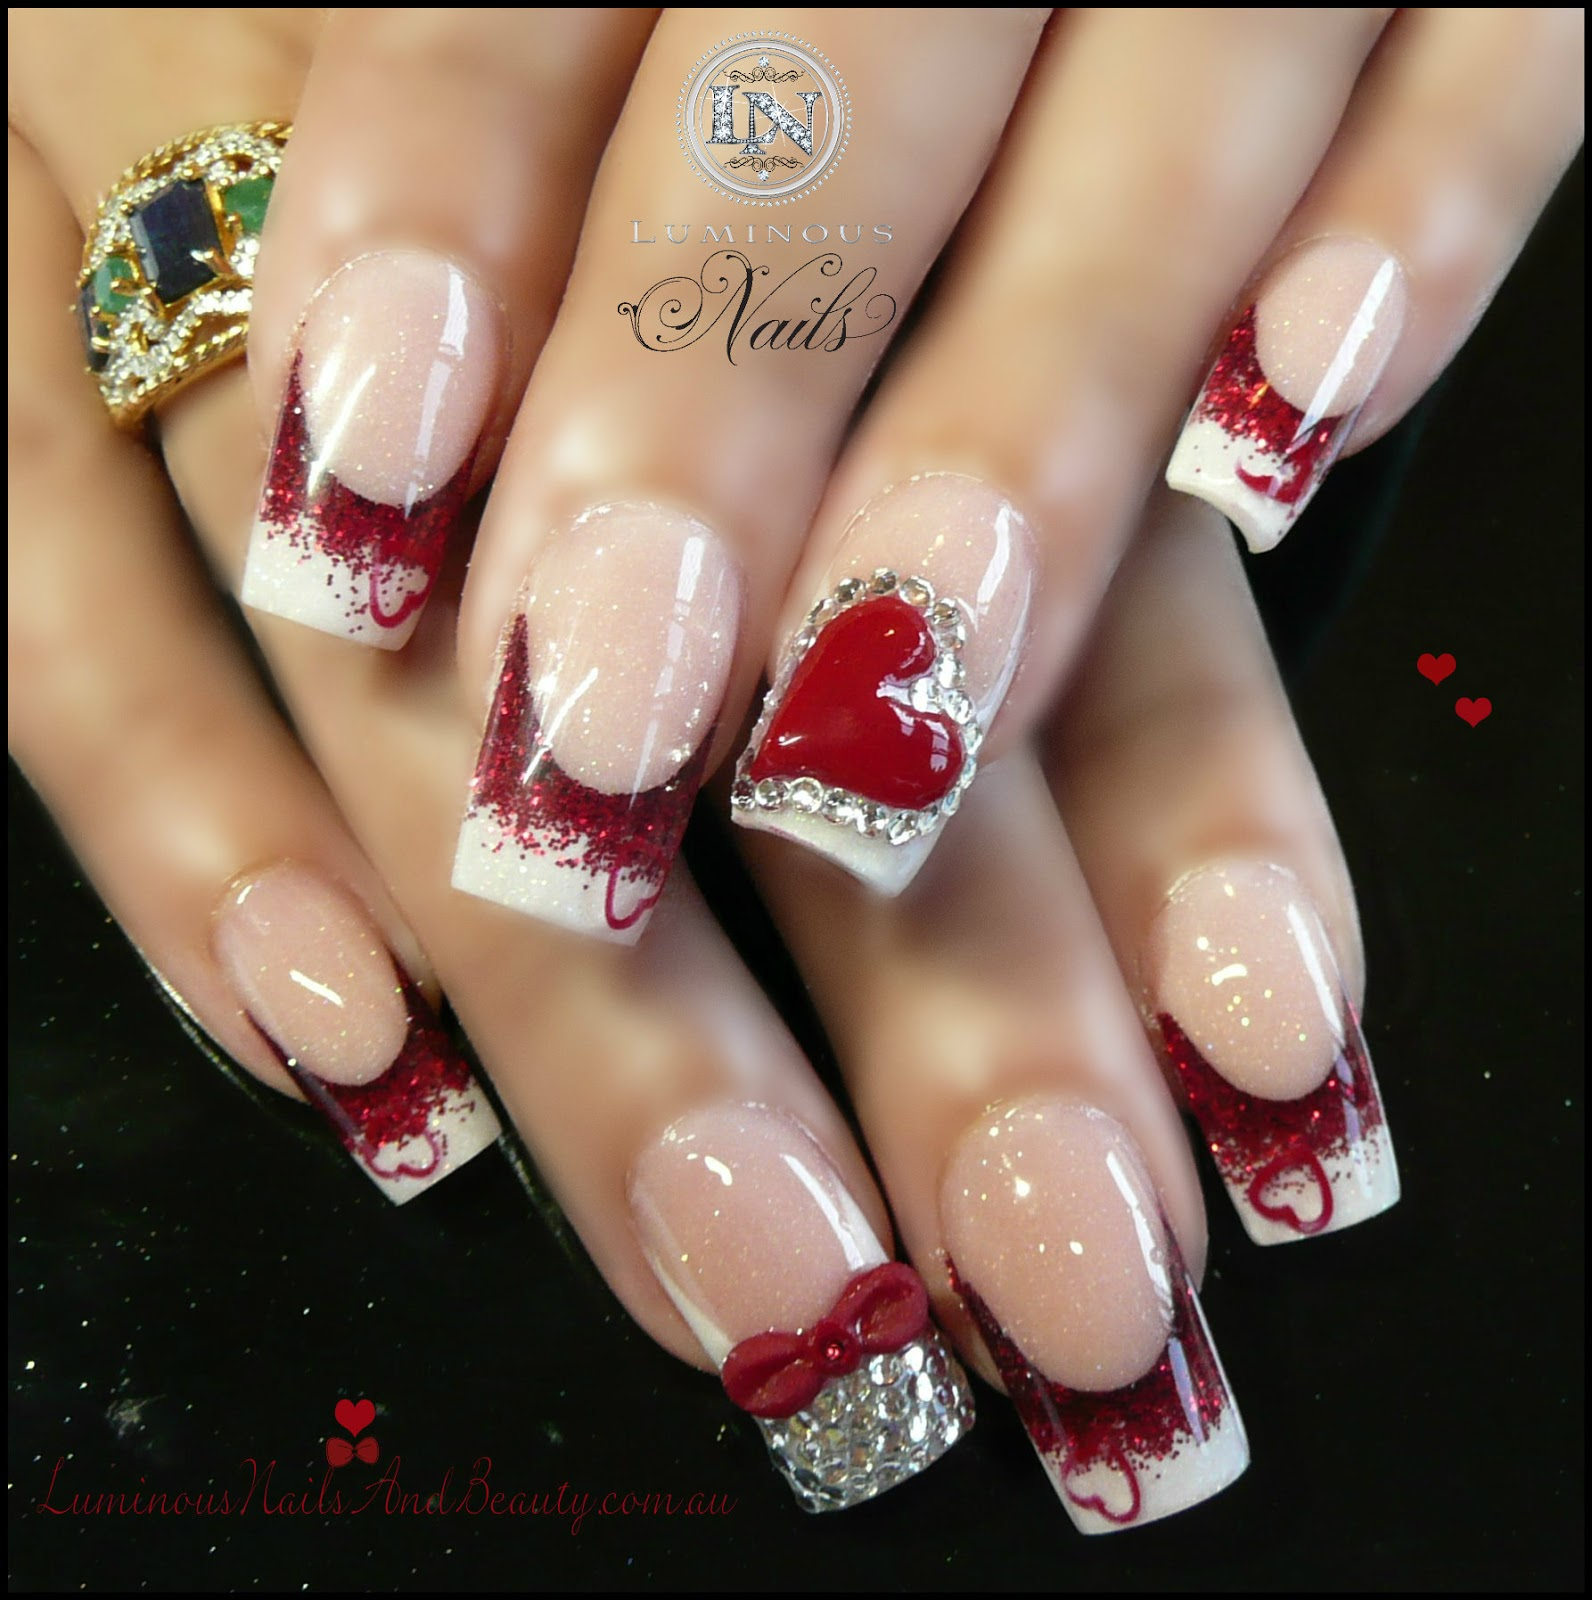 The Astounding Best 3d nail designs 2015 Picture